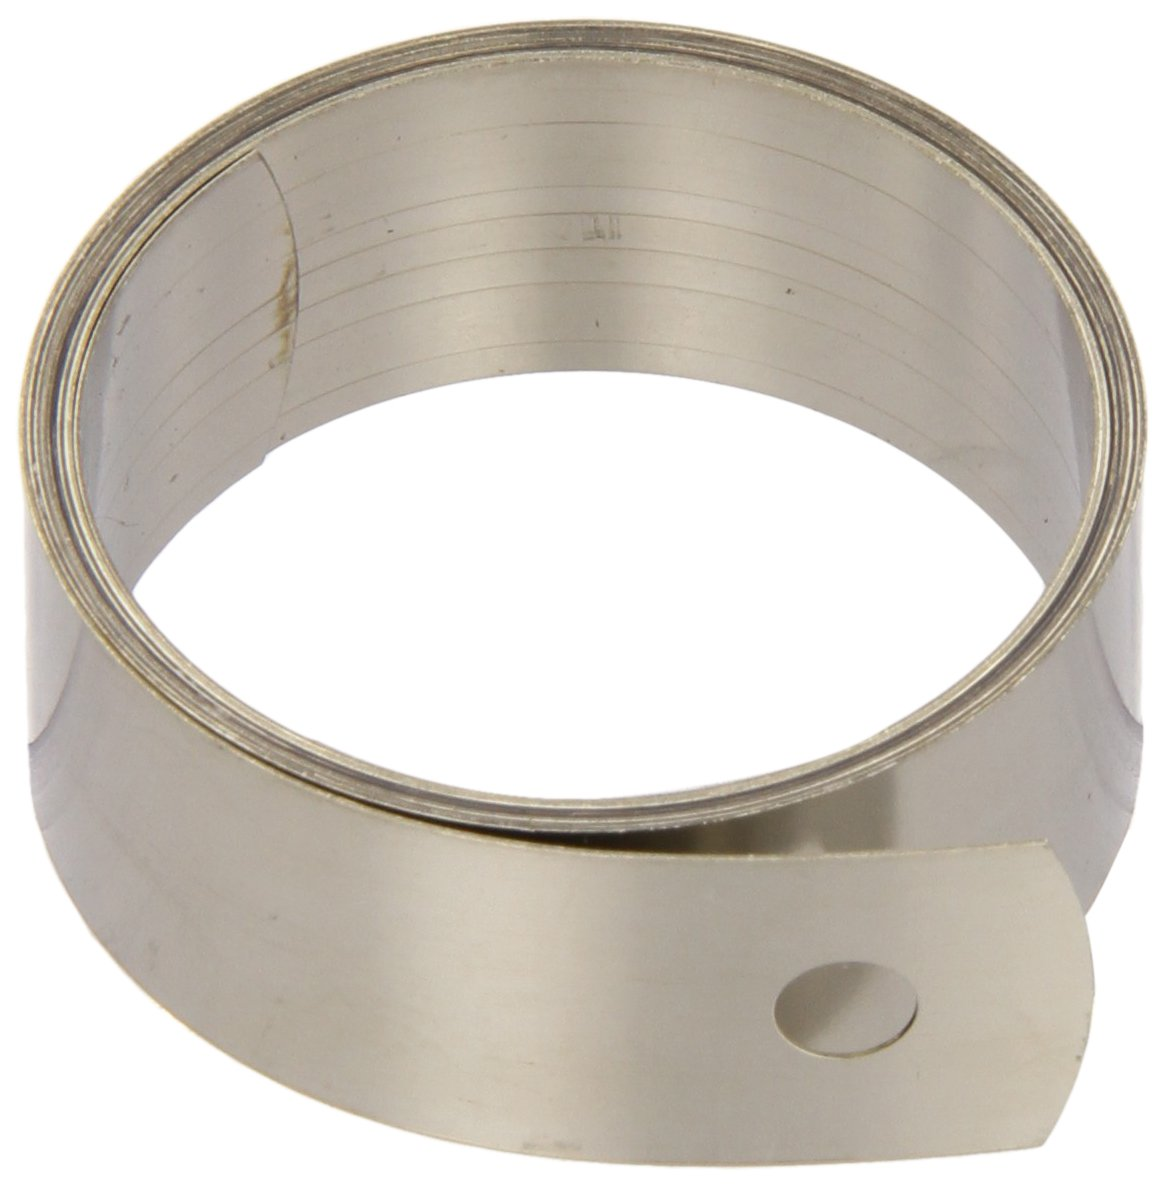 """Constant Force Spring, 301 Stainless Steel, Inch, 25000 Cycle Life, 35"""" Extended Length, 0.63"""" Width, 1.36"""" ID, 1.52"""" OD, 0.2"""" End Hole Diameter, 1.46lbs/in Load Capacity (Pack of 5)"""